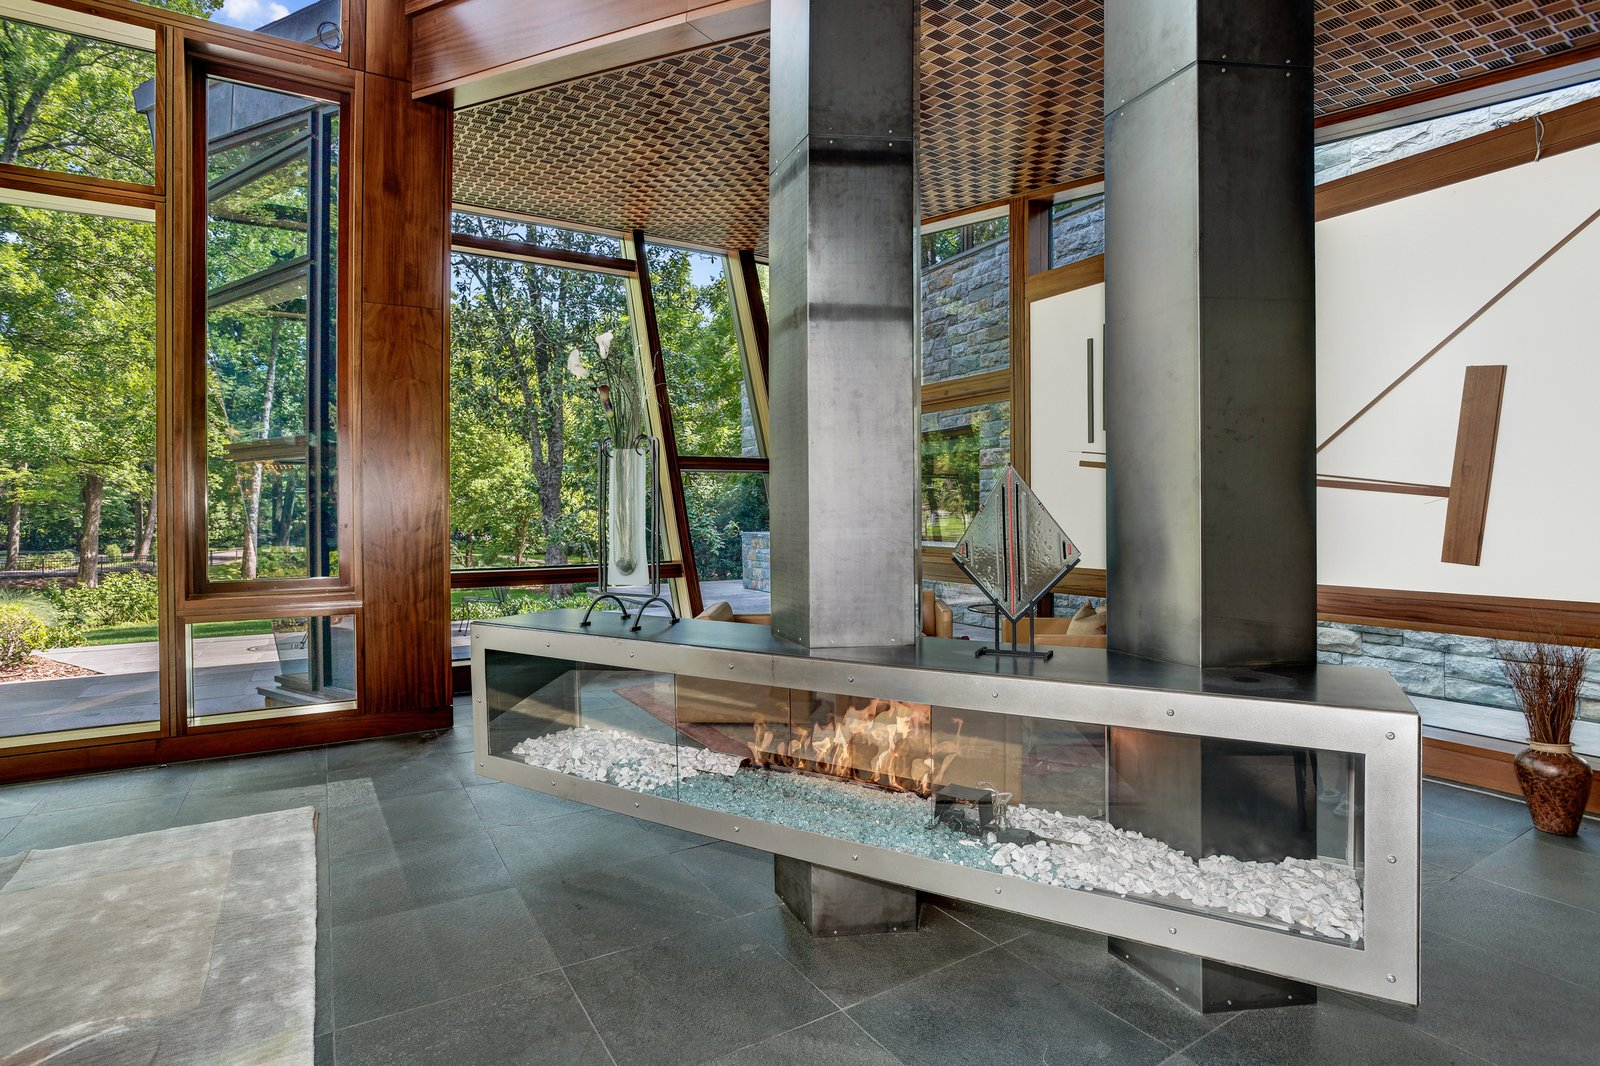 Designed by architect David Jameson in the heart of Bethesda, Maryland, this sculptural residence is filled with bespoke elements that are made up of wood, metal, stone, and glass. The centralized fireplace divides the open living space into two separate seating areas, without closing them off from one another.  97+ Modern Fireplace Ideas from Proof That a Modern Fireplace Can Be the Defining Factor of a Space